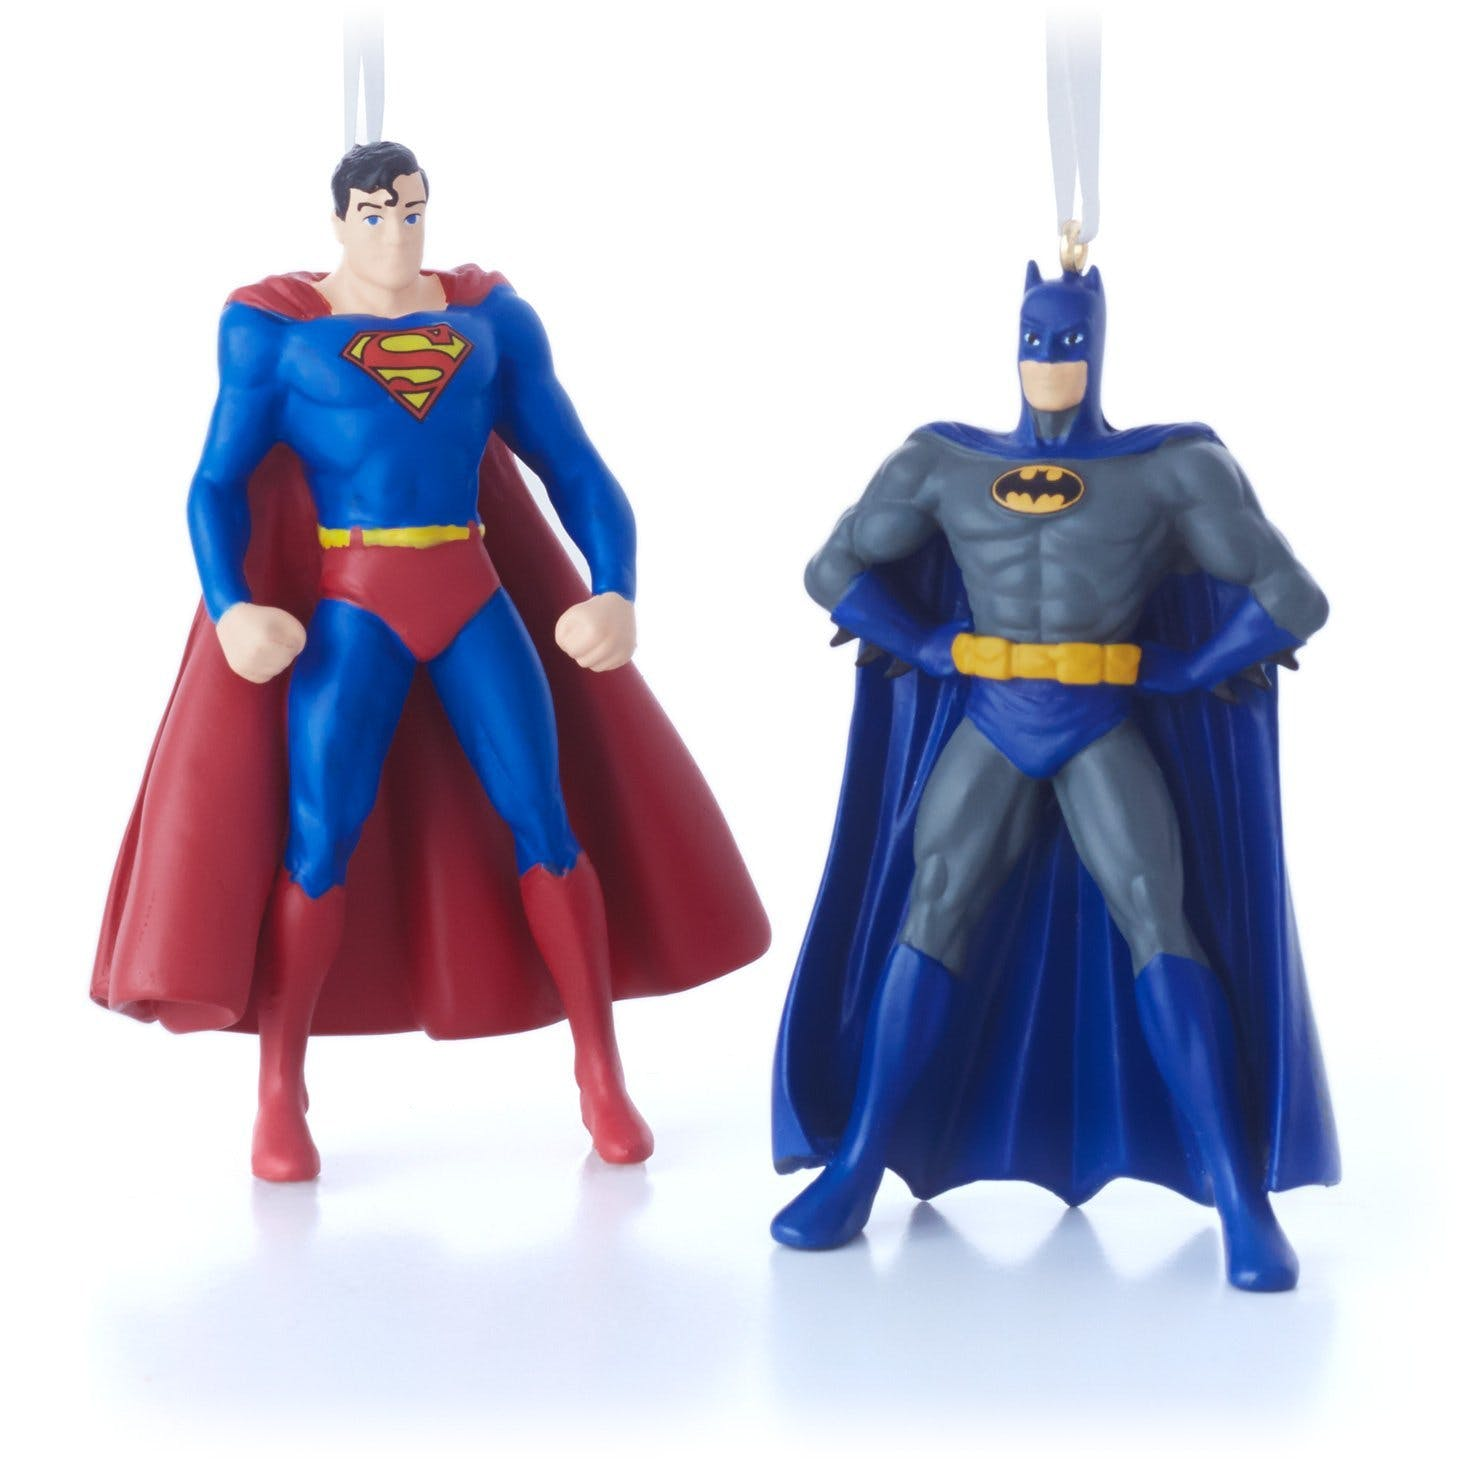 Superman and Batman Christmas ornaments